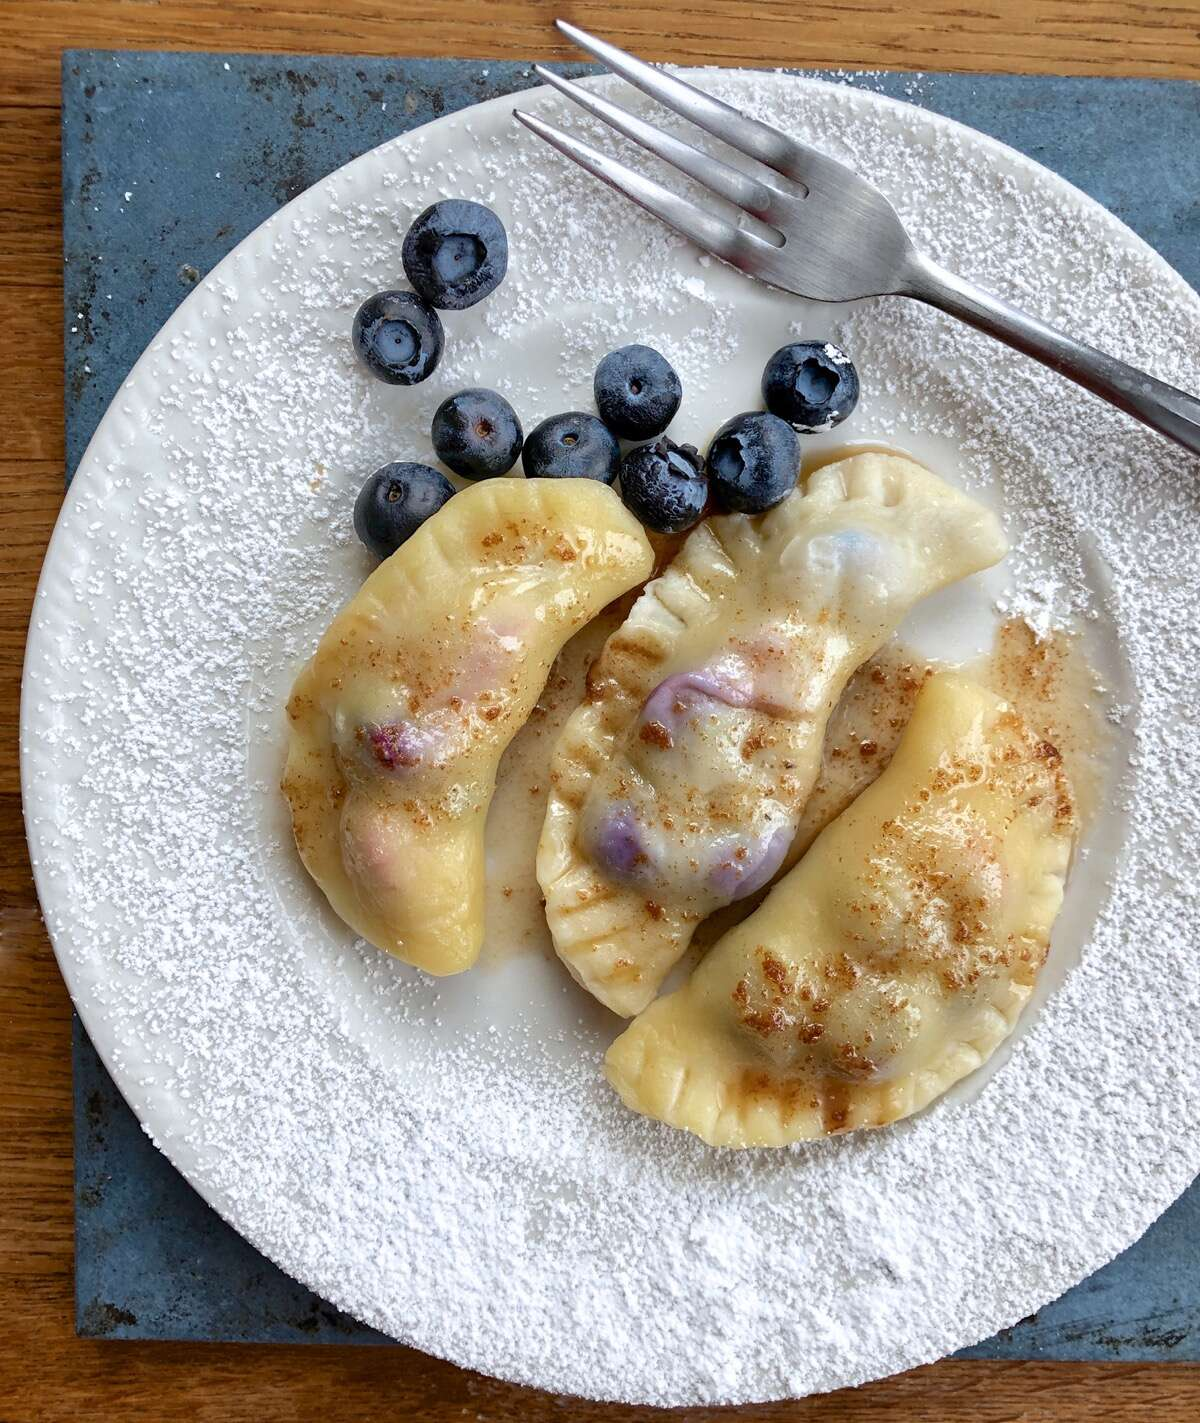 Fresh berry pierogi on a plate, drizzled with brown butter and dusted with confectioners' sugar .